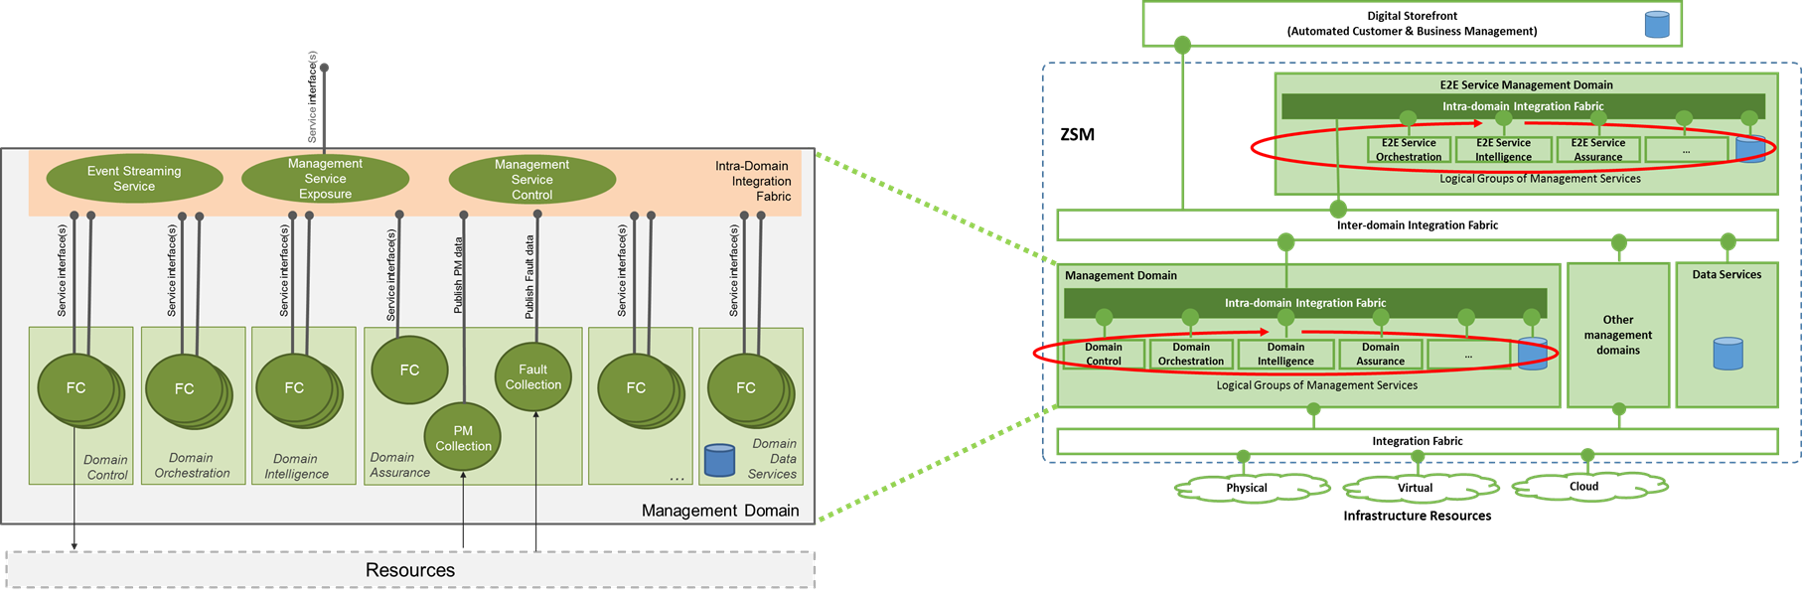 High level architecture inside a management domain